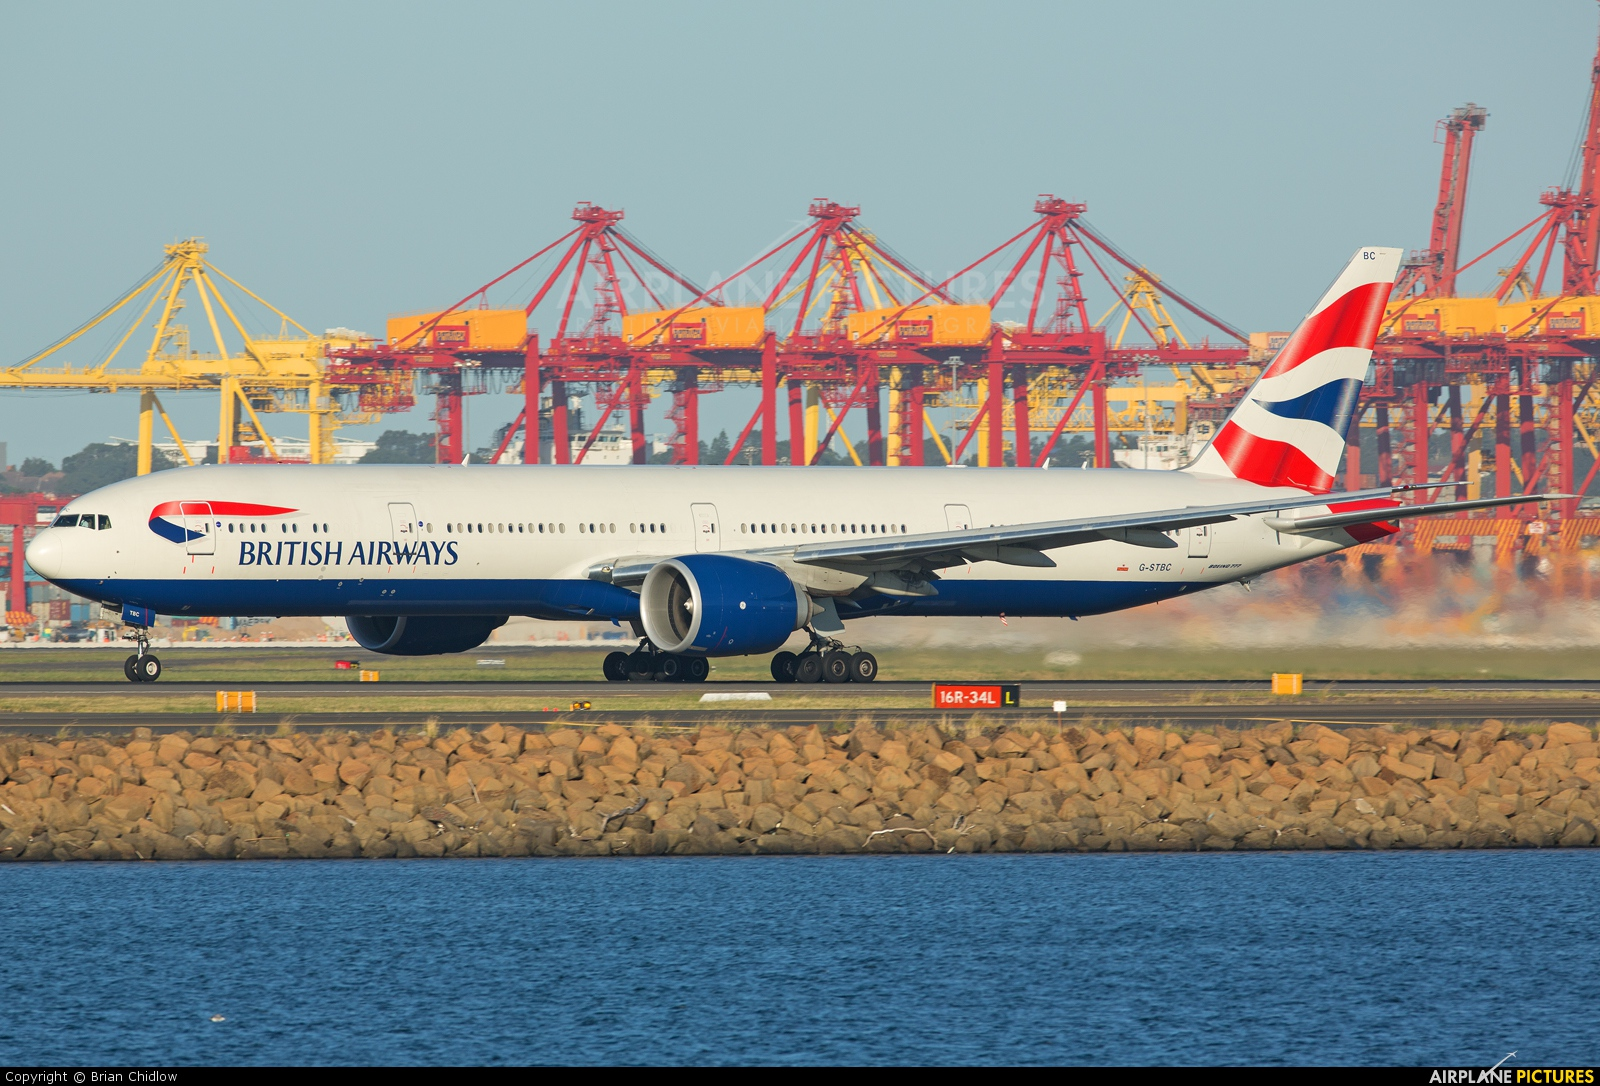 British Airways G-STBC aircraft at Sydney - Kingsford Smith Intl, NSW